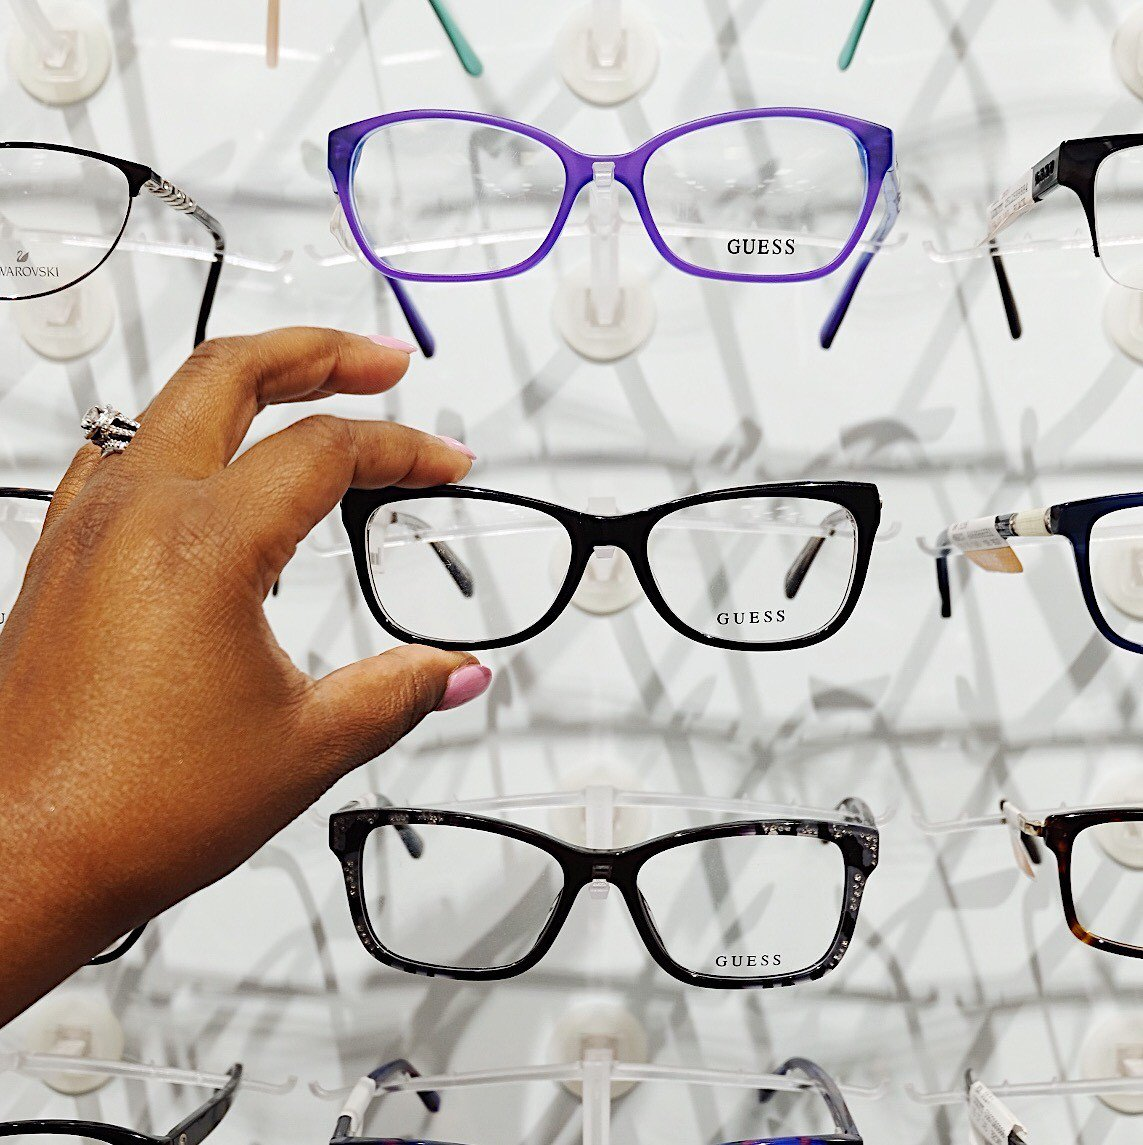 b4b077ff3c1 Find your new favorite pair of glasses today! http   bit.ly shop-egw  pic.twitter.com hPU3FZ6Gia